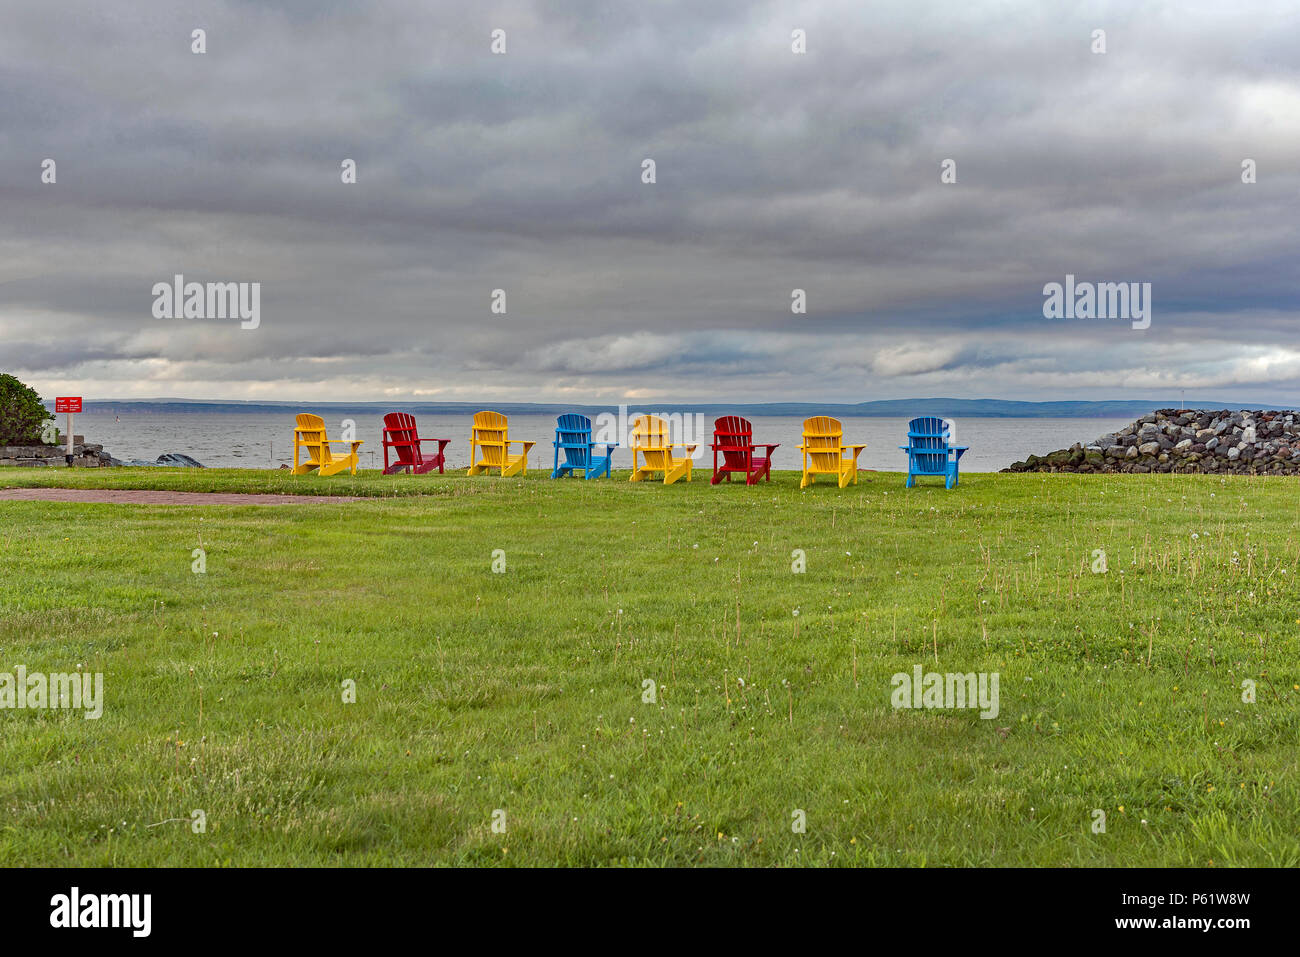 Colourful chairs overlooking the Bay of Fundy in Alma, New Brunswick, Canada. - Stock Image